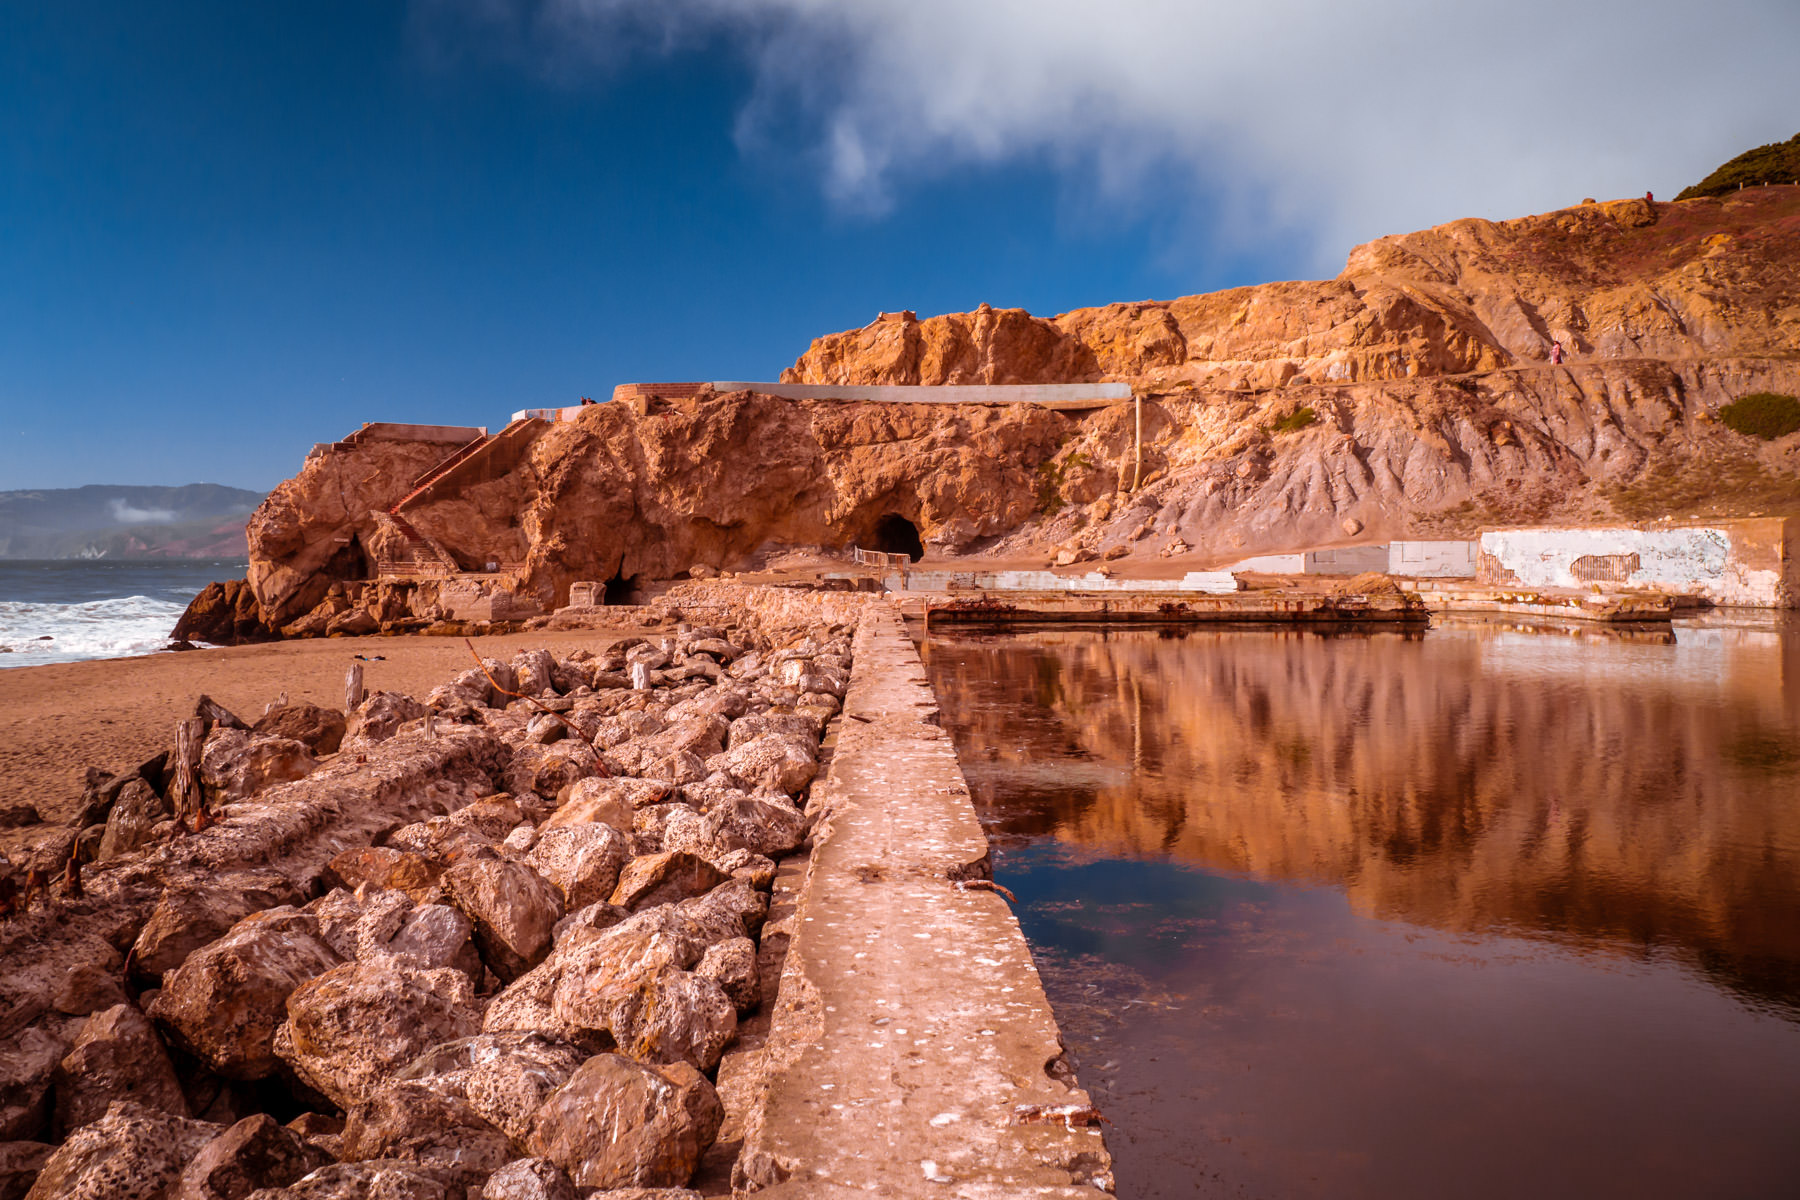 The bluffs of San Francisco's Lands End are reflected in a pool amongst the ruins of Sutro Baths.